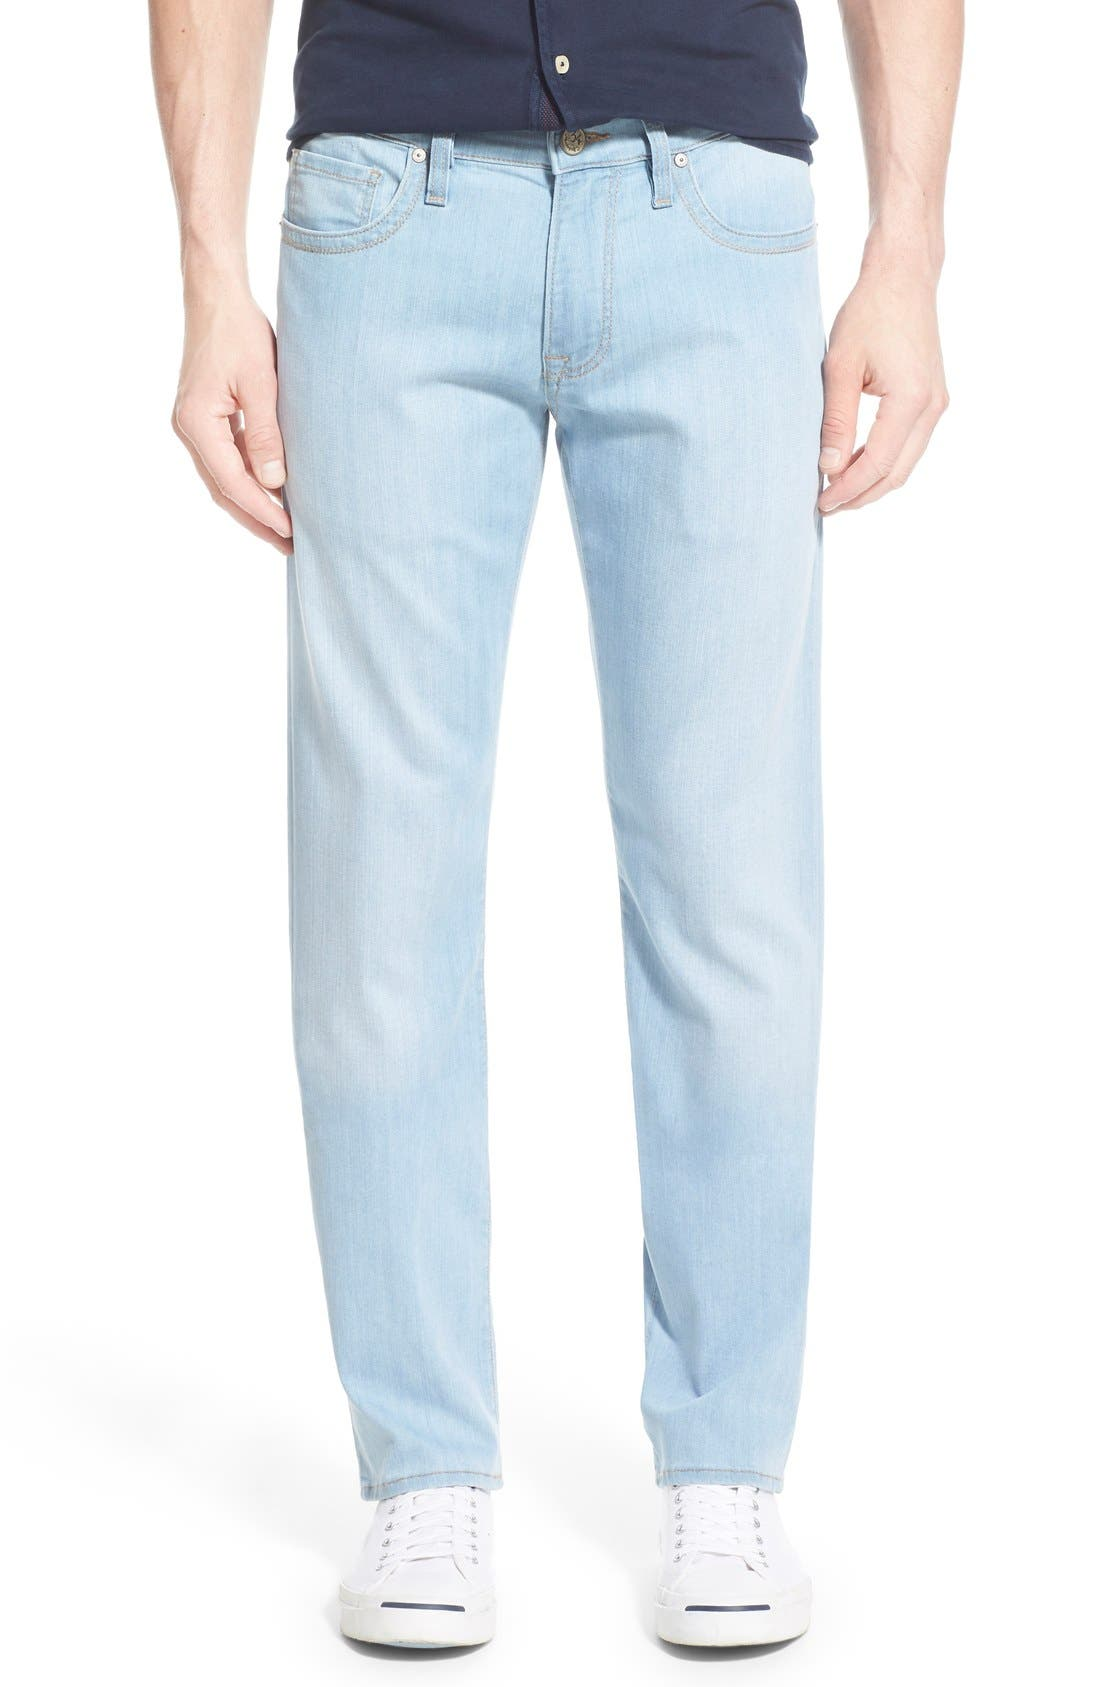 34 Heritage Courage Straight Leg Jeans (Bleach Hawaii) (Regular & Tall)